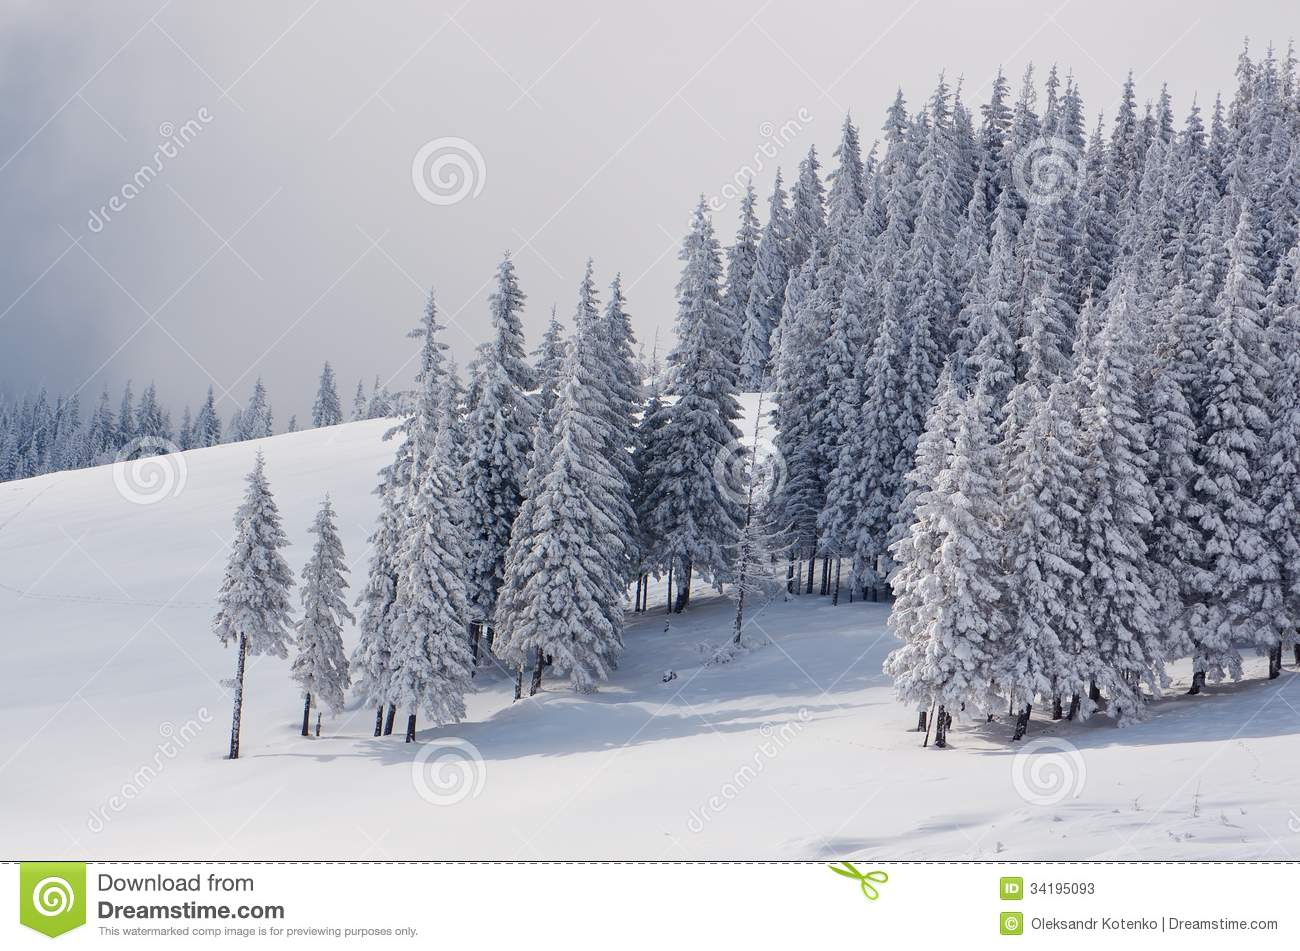 snowy fir trees forest - photo #14